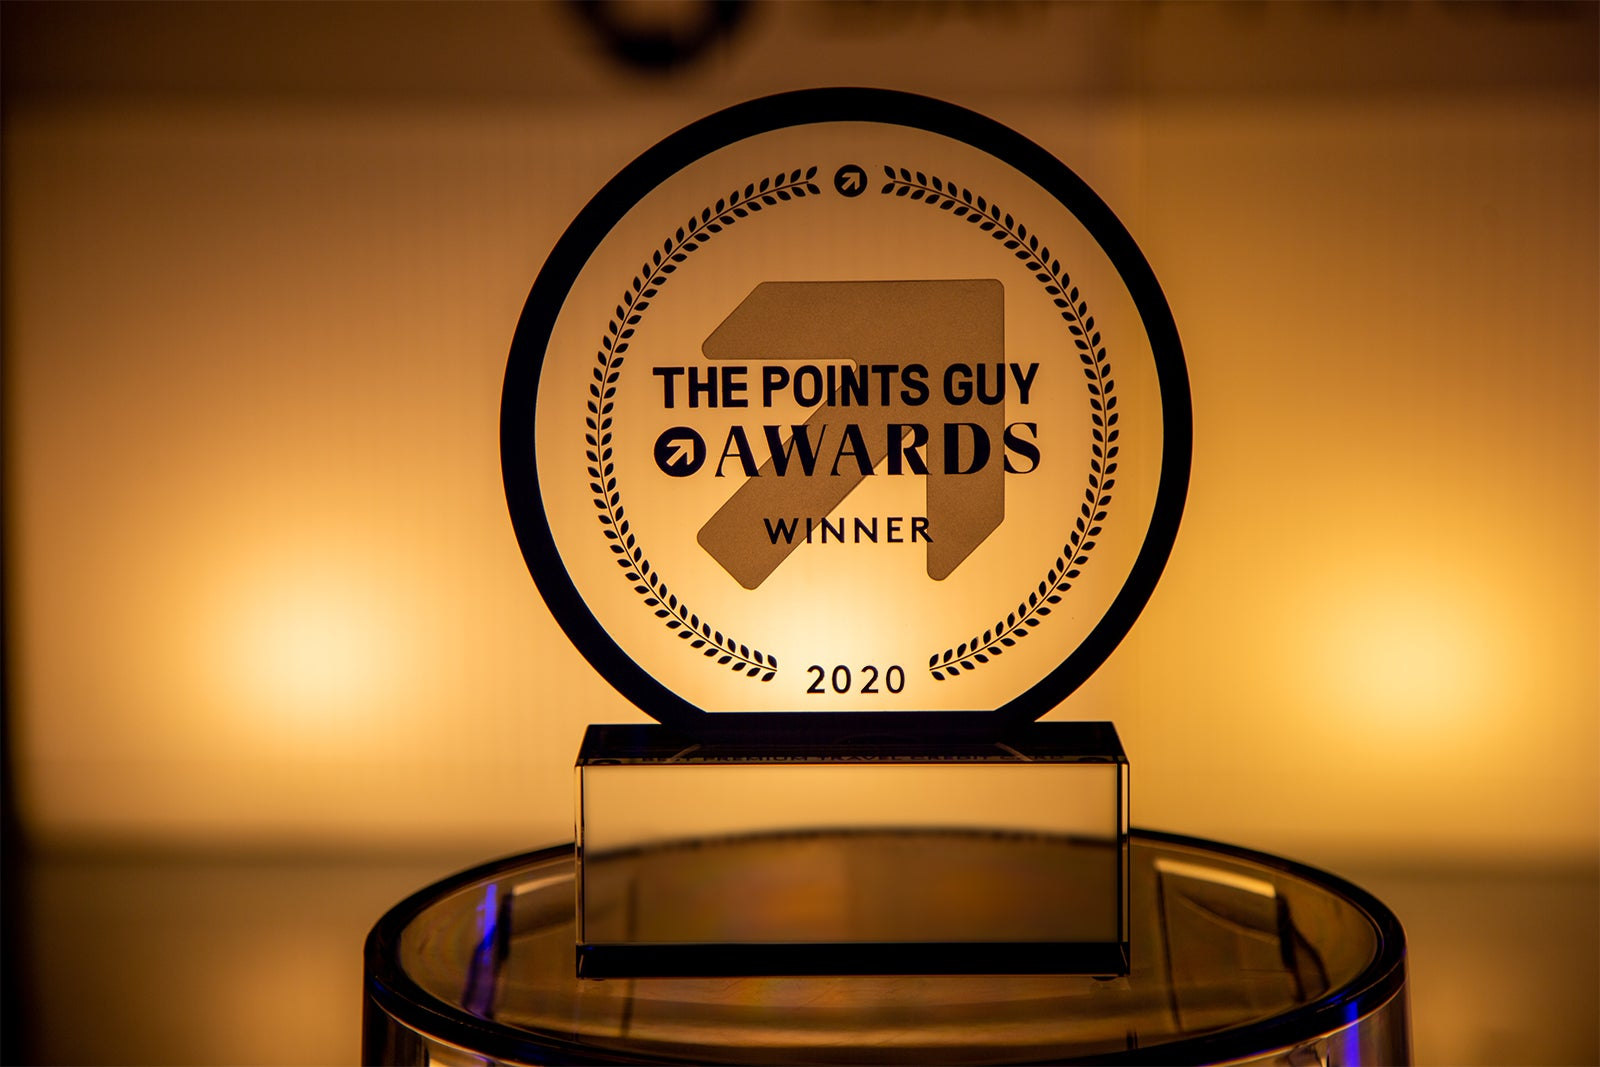 Cruise-line winners at the 2020 TPG Awards — The Points Guy